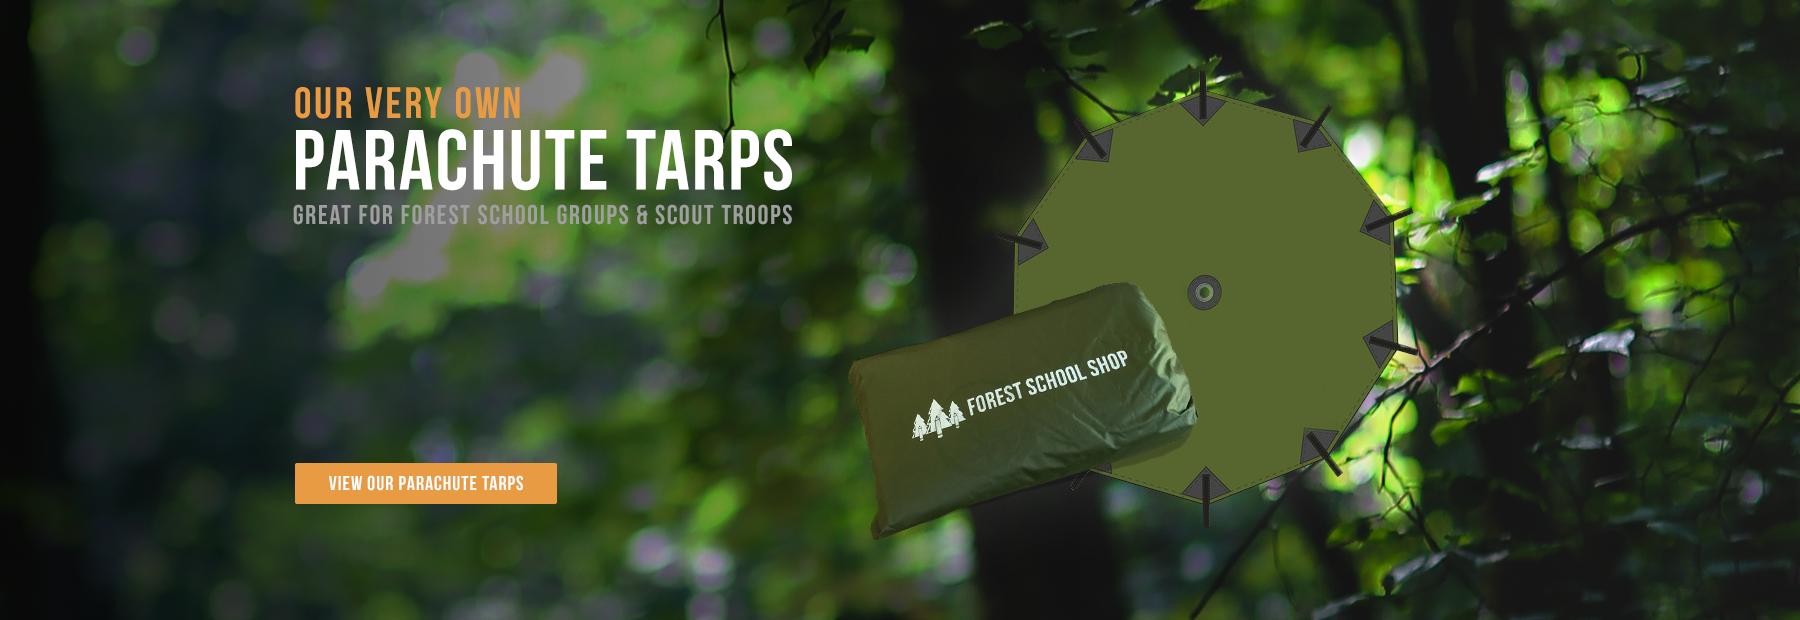 Parachute Tarp - Great for Forest School Groups and Scout Troops